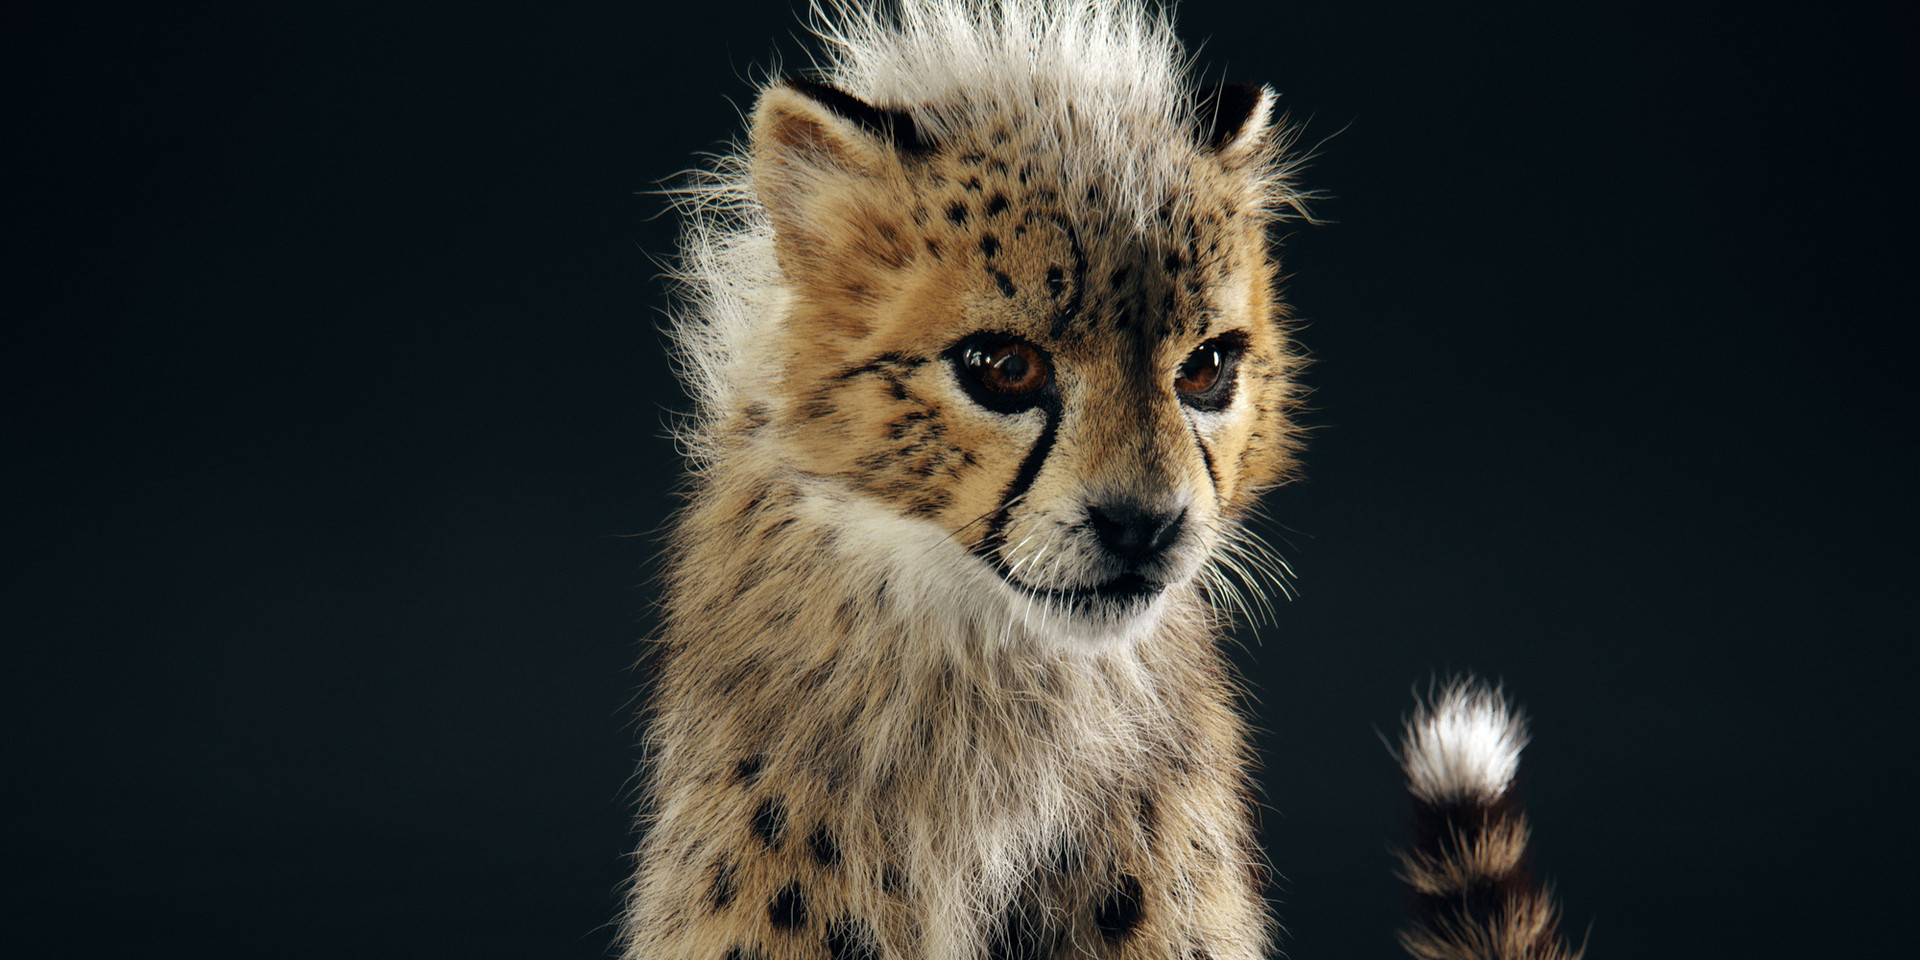 The Baby Cheetah in studio